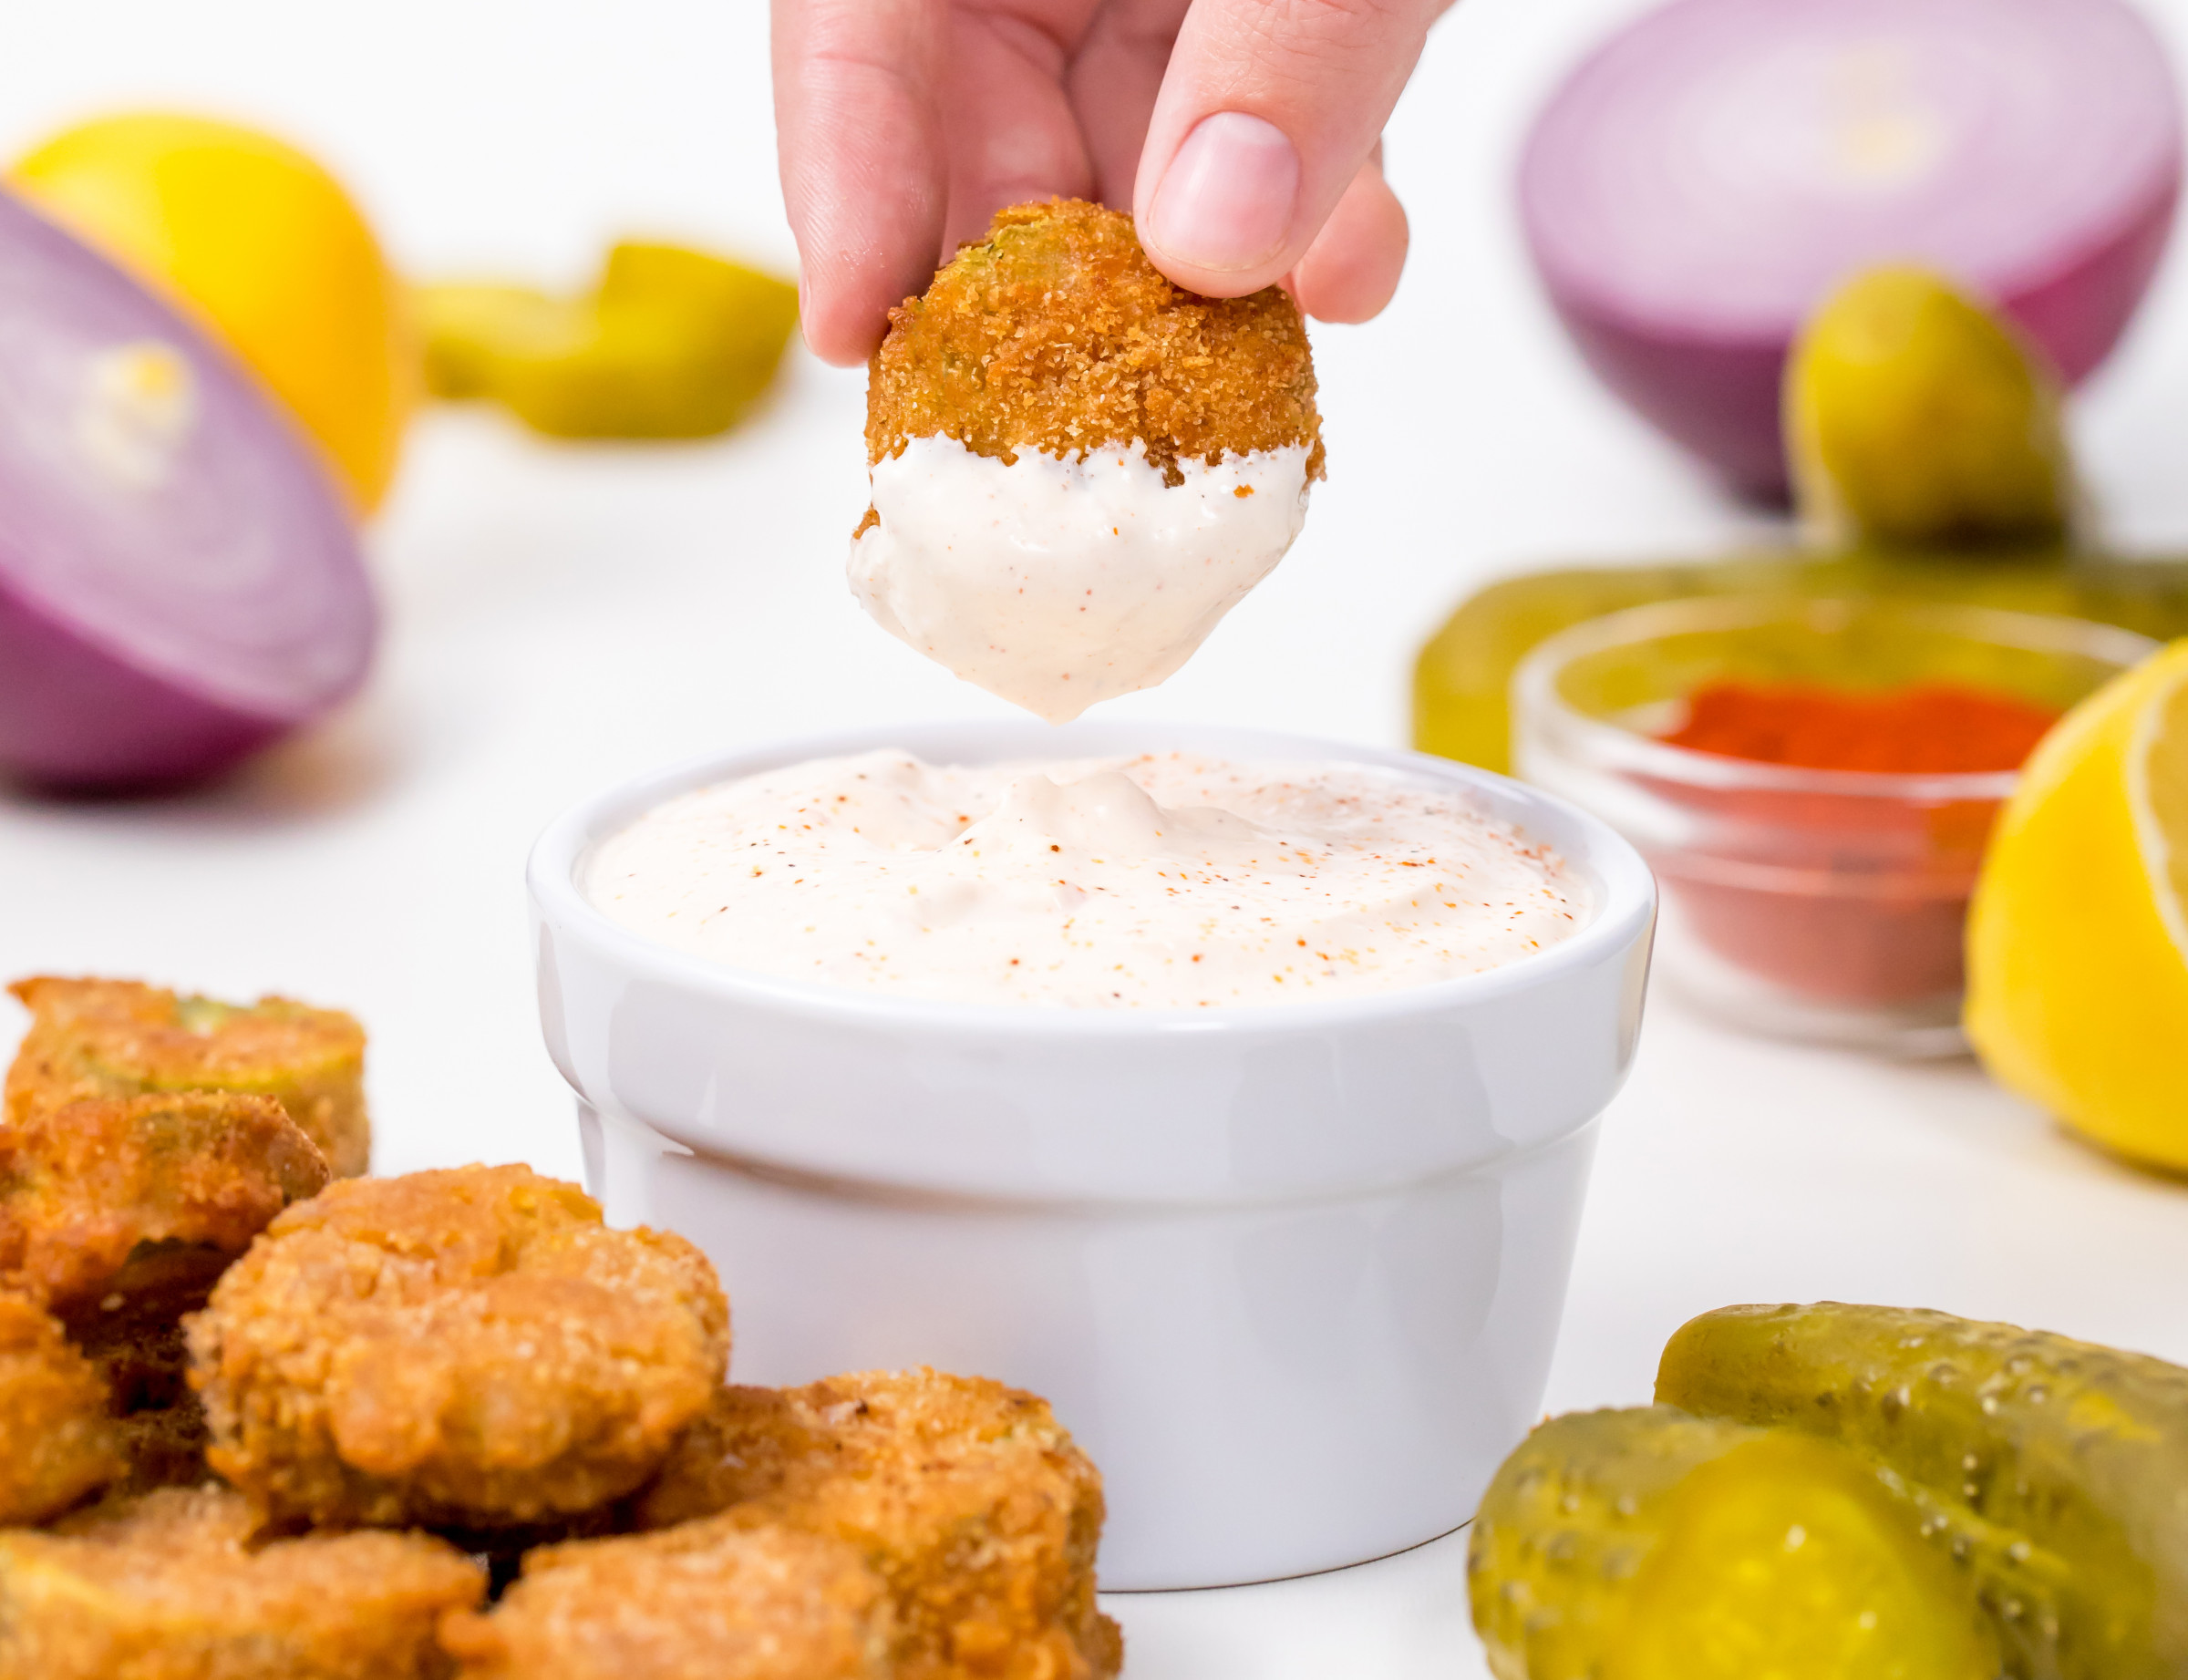 How to make fried pickles crispy again